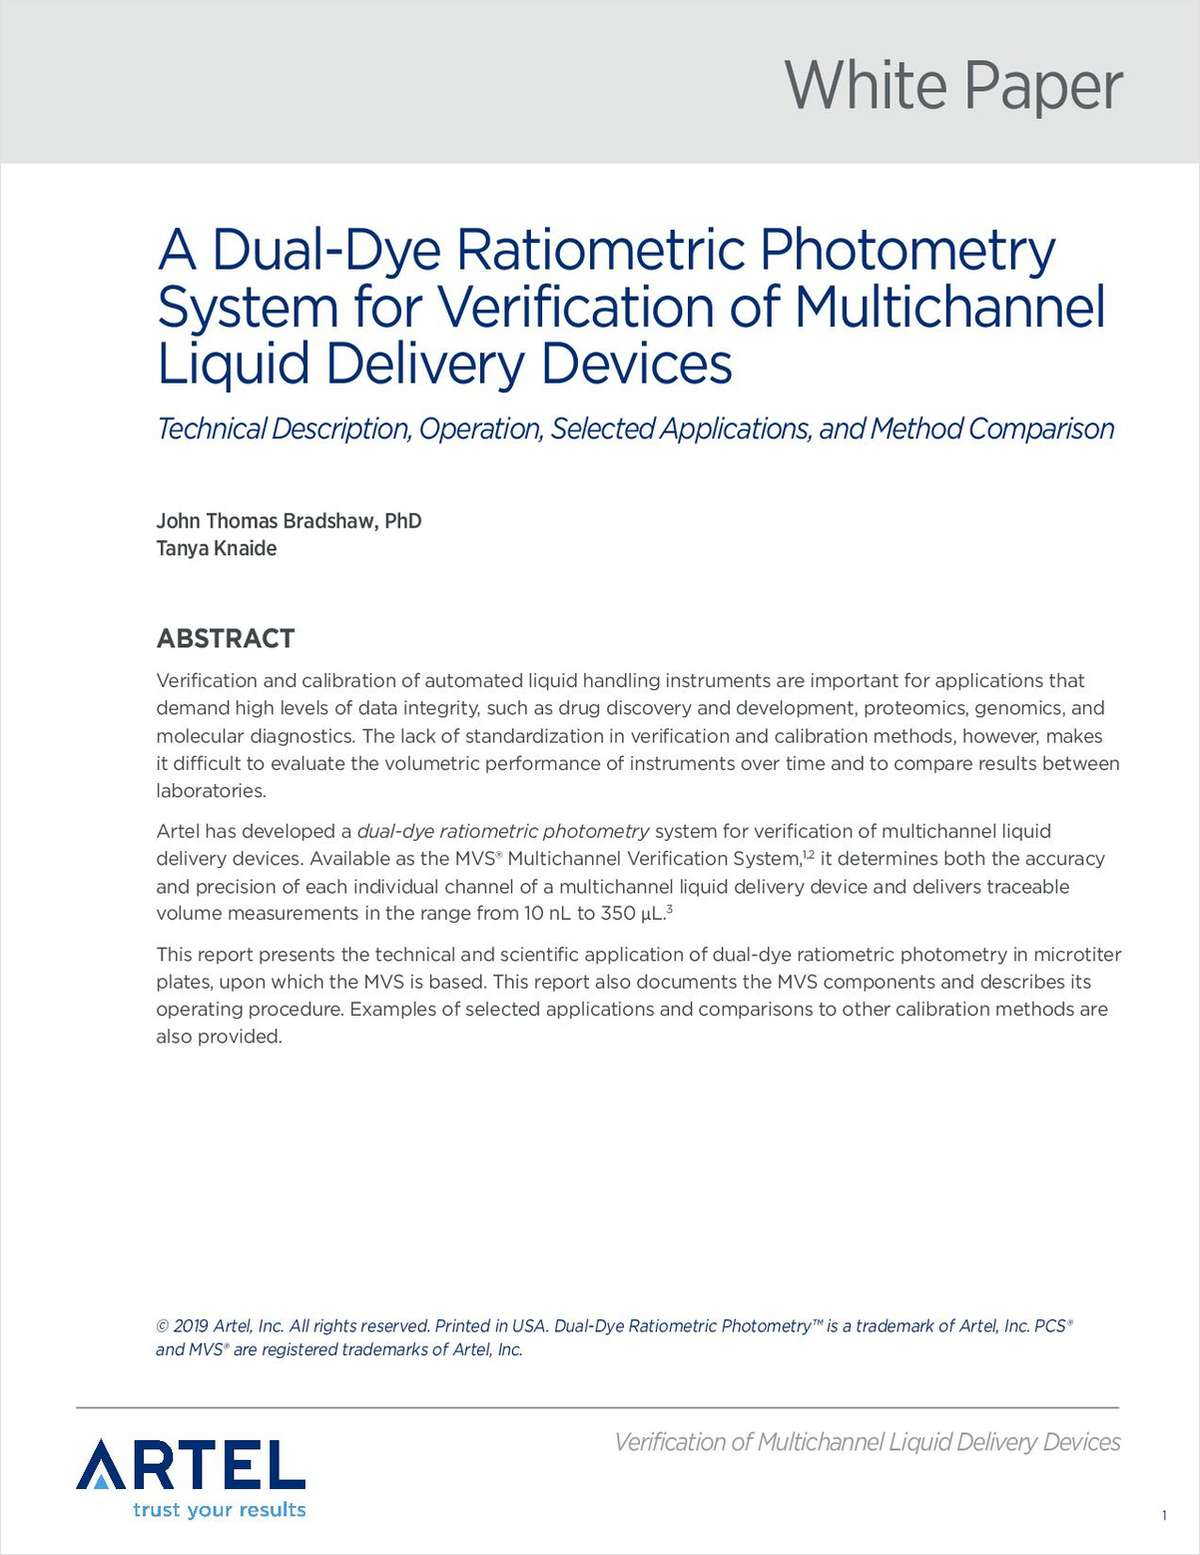 A Dual-Dye Ratiometric Photometry System for Verification of Multichannel Liquid Delivery Devices